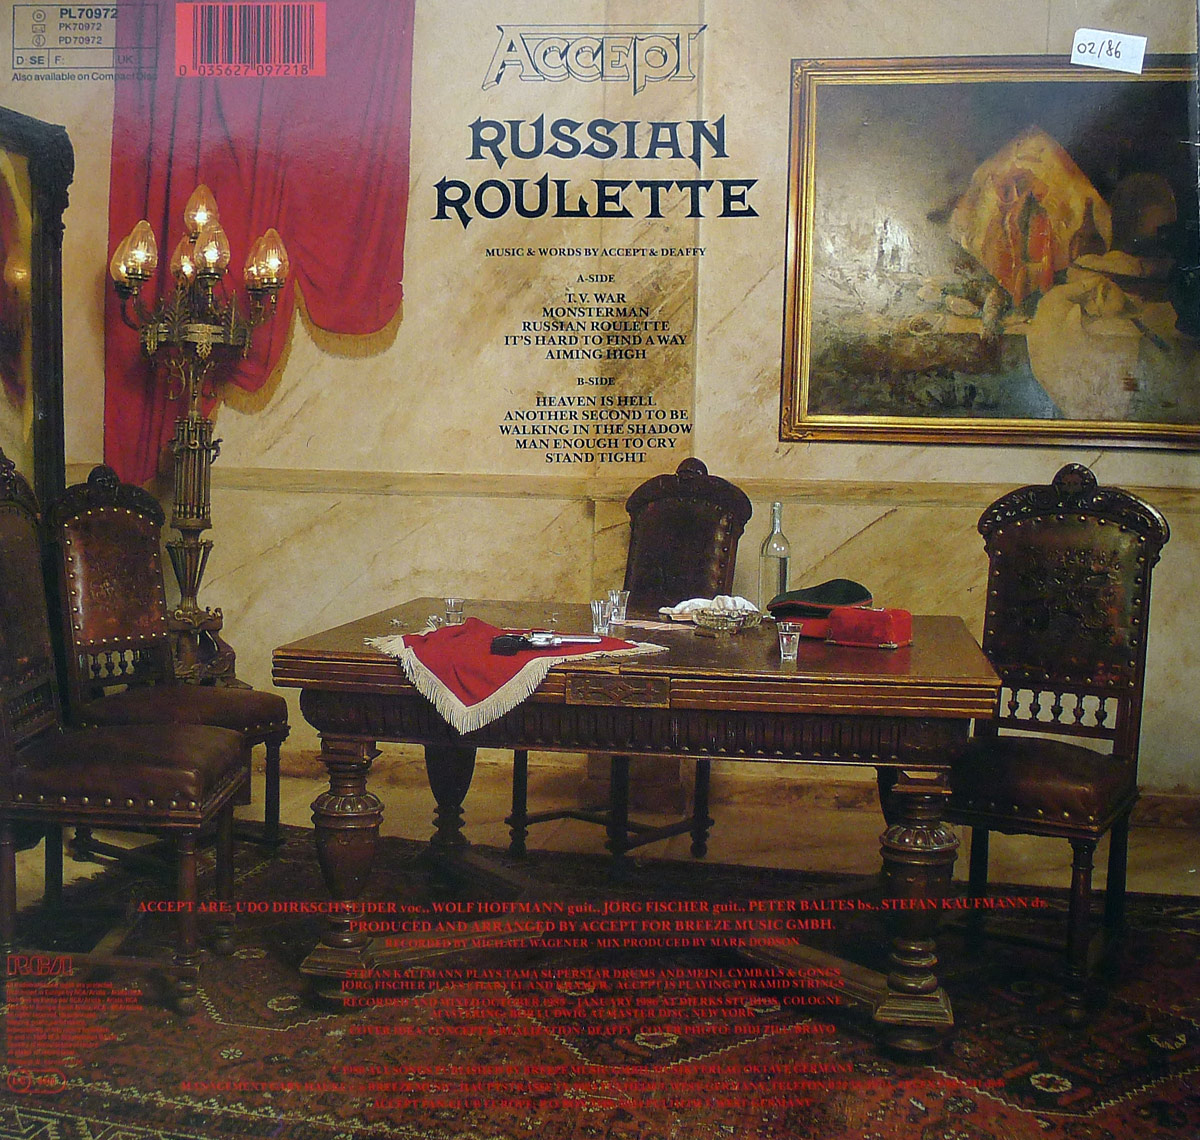 Hires photo of album back cover of Accept's Russian Roulette